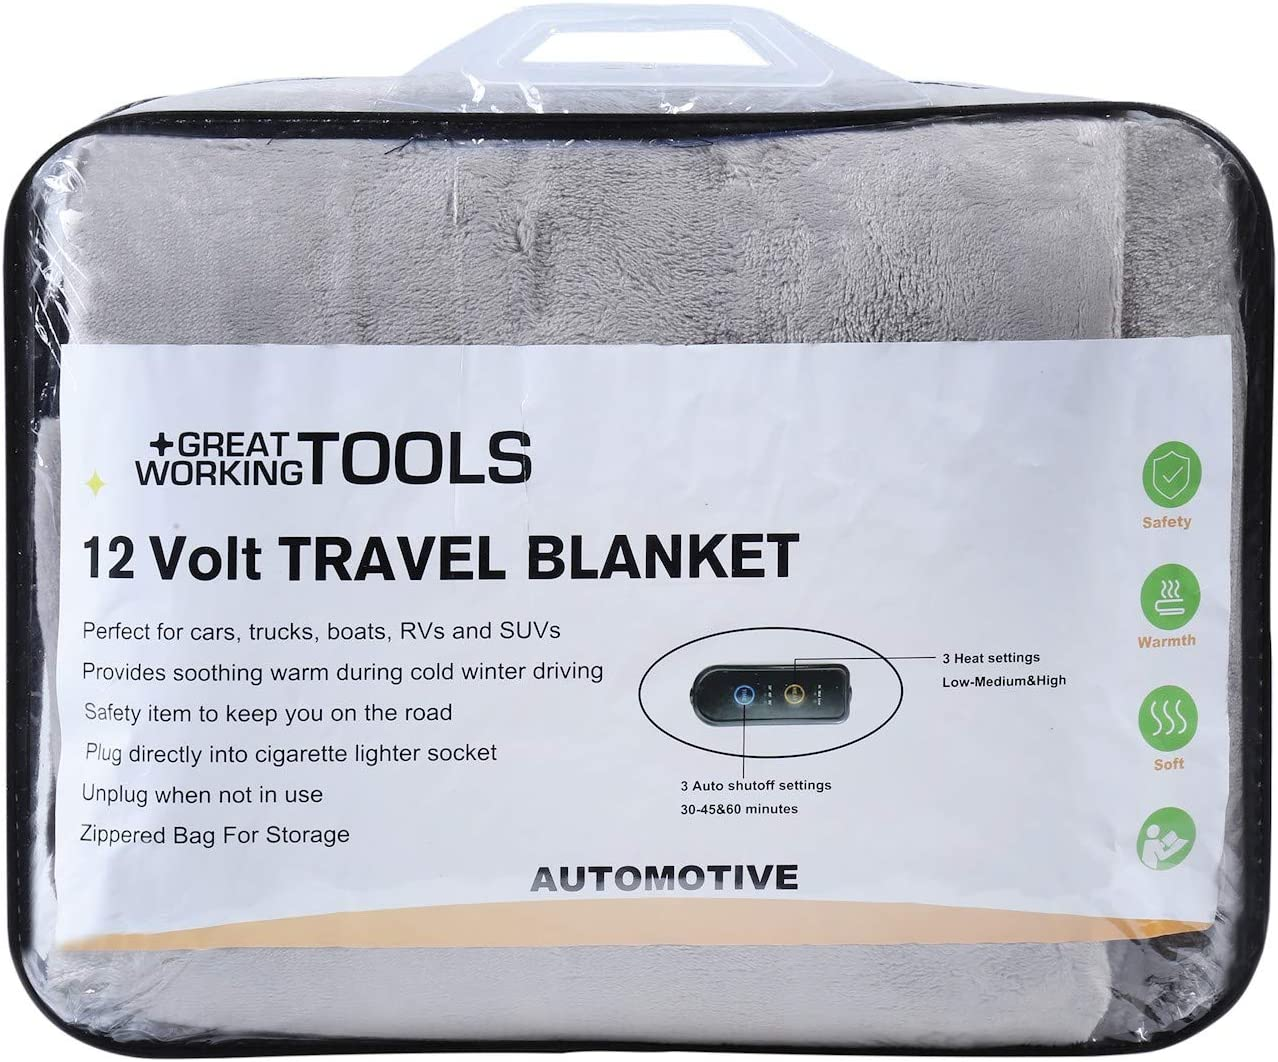 Auto Shutoff Washable Long 8 Cord Plugs into Cars 12v Outlet 55 X 40 Great Working Tools Heated Electric Car Blanket Blue 3 Heat Settings Blue